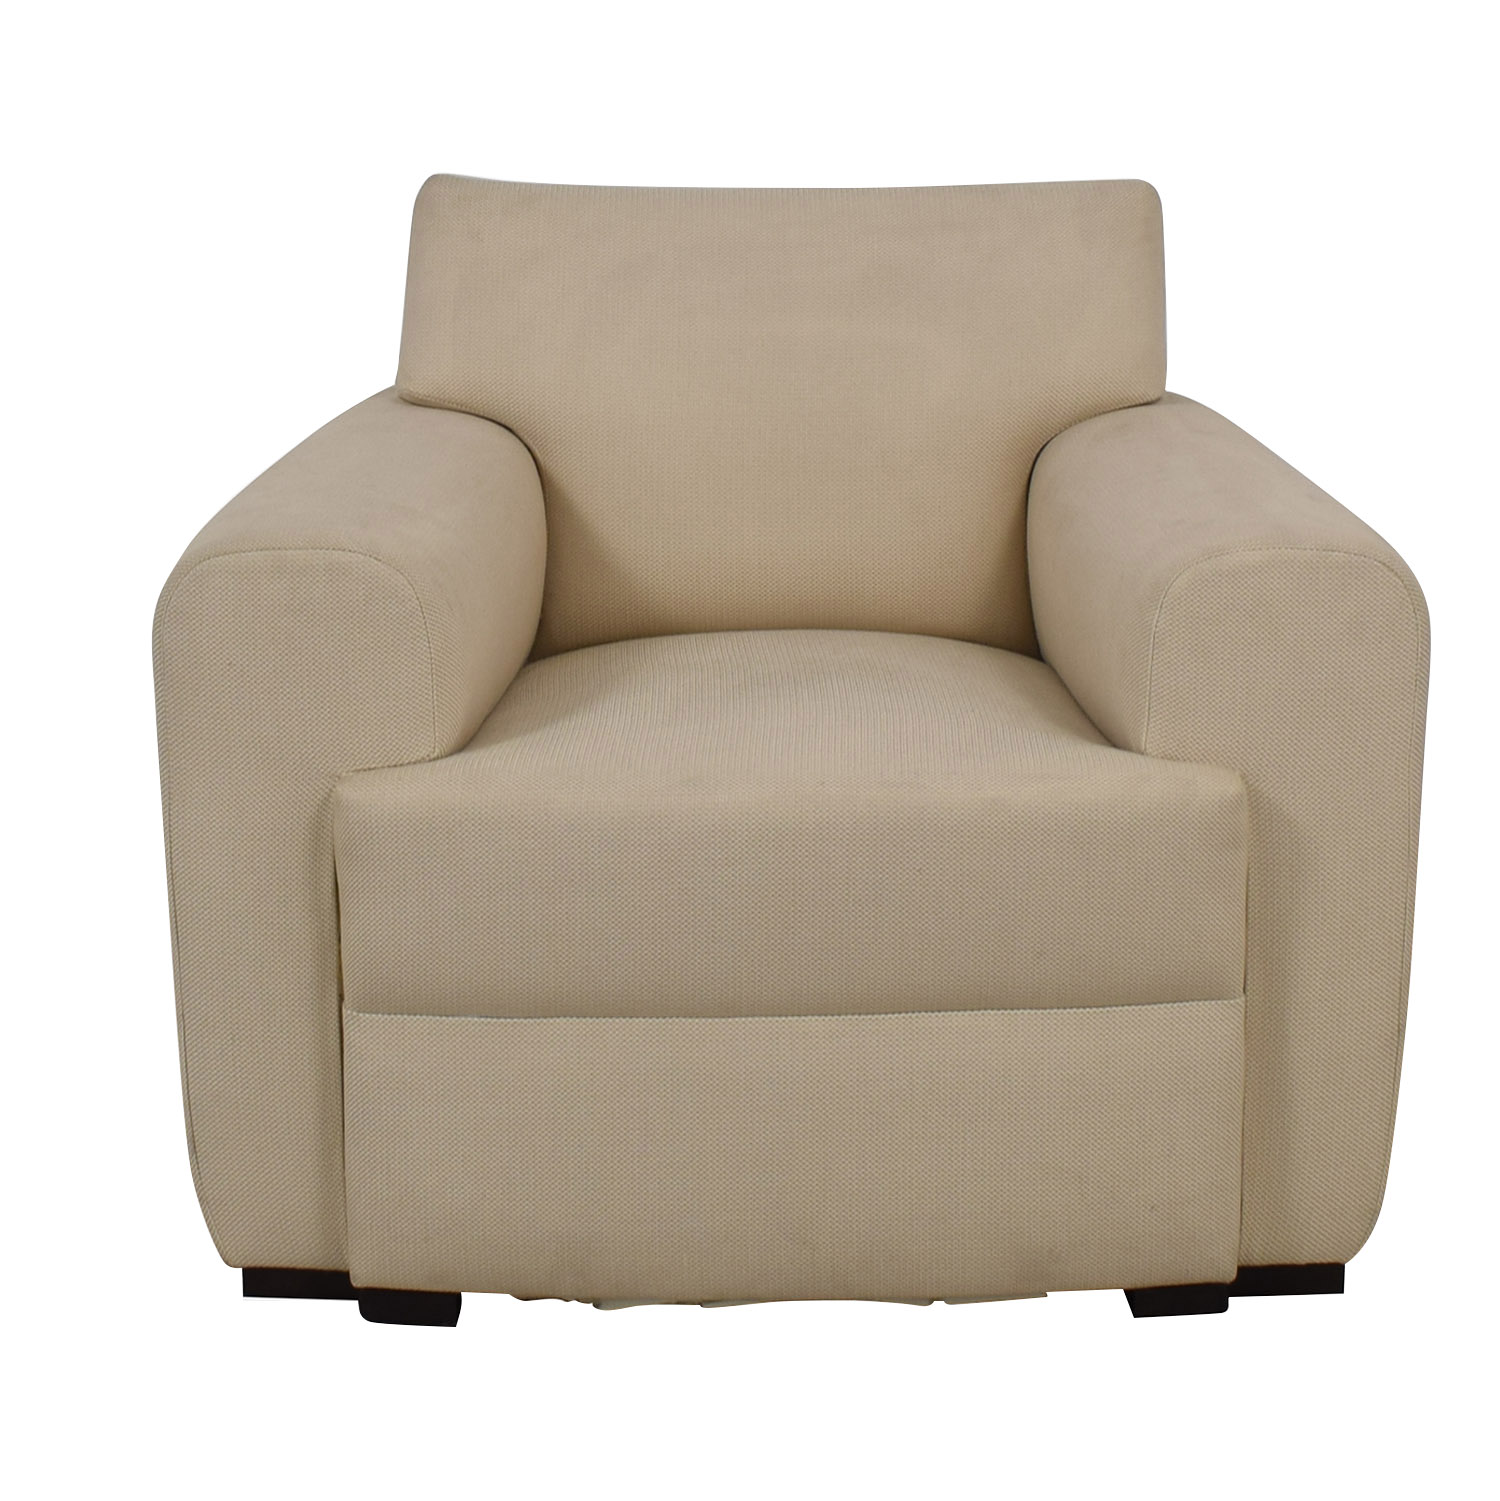 Furniture Masters Furniture Masters White Accent Chair on sale